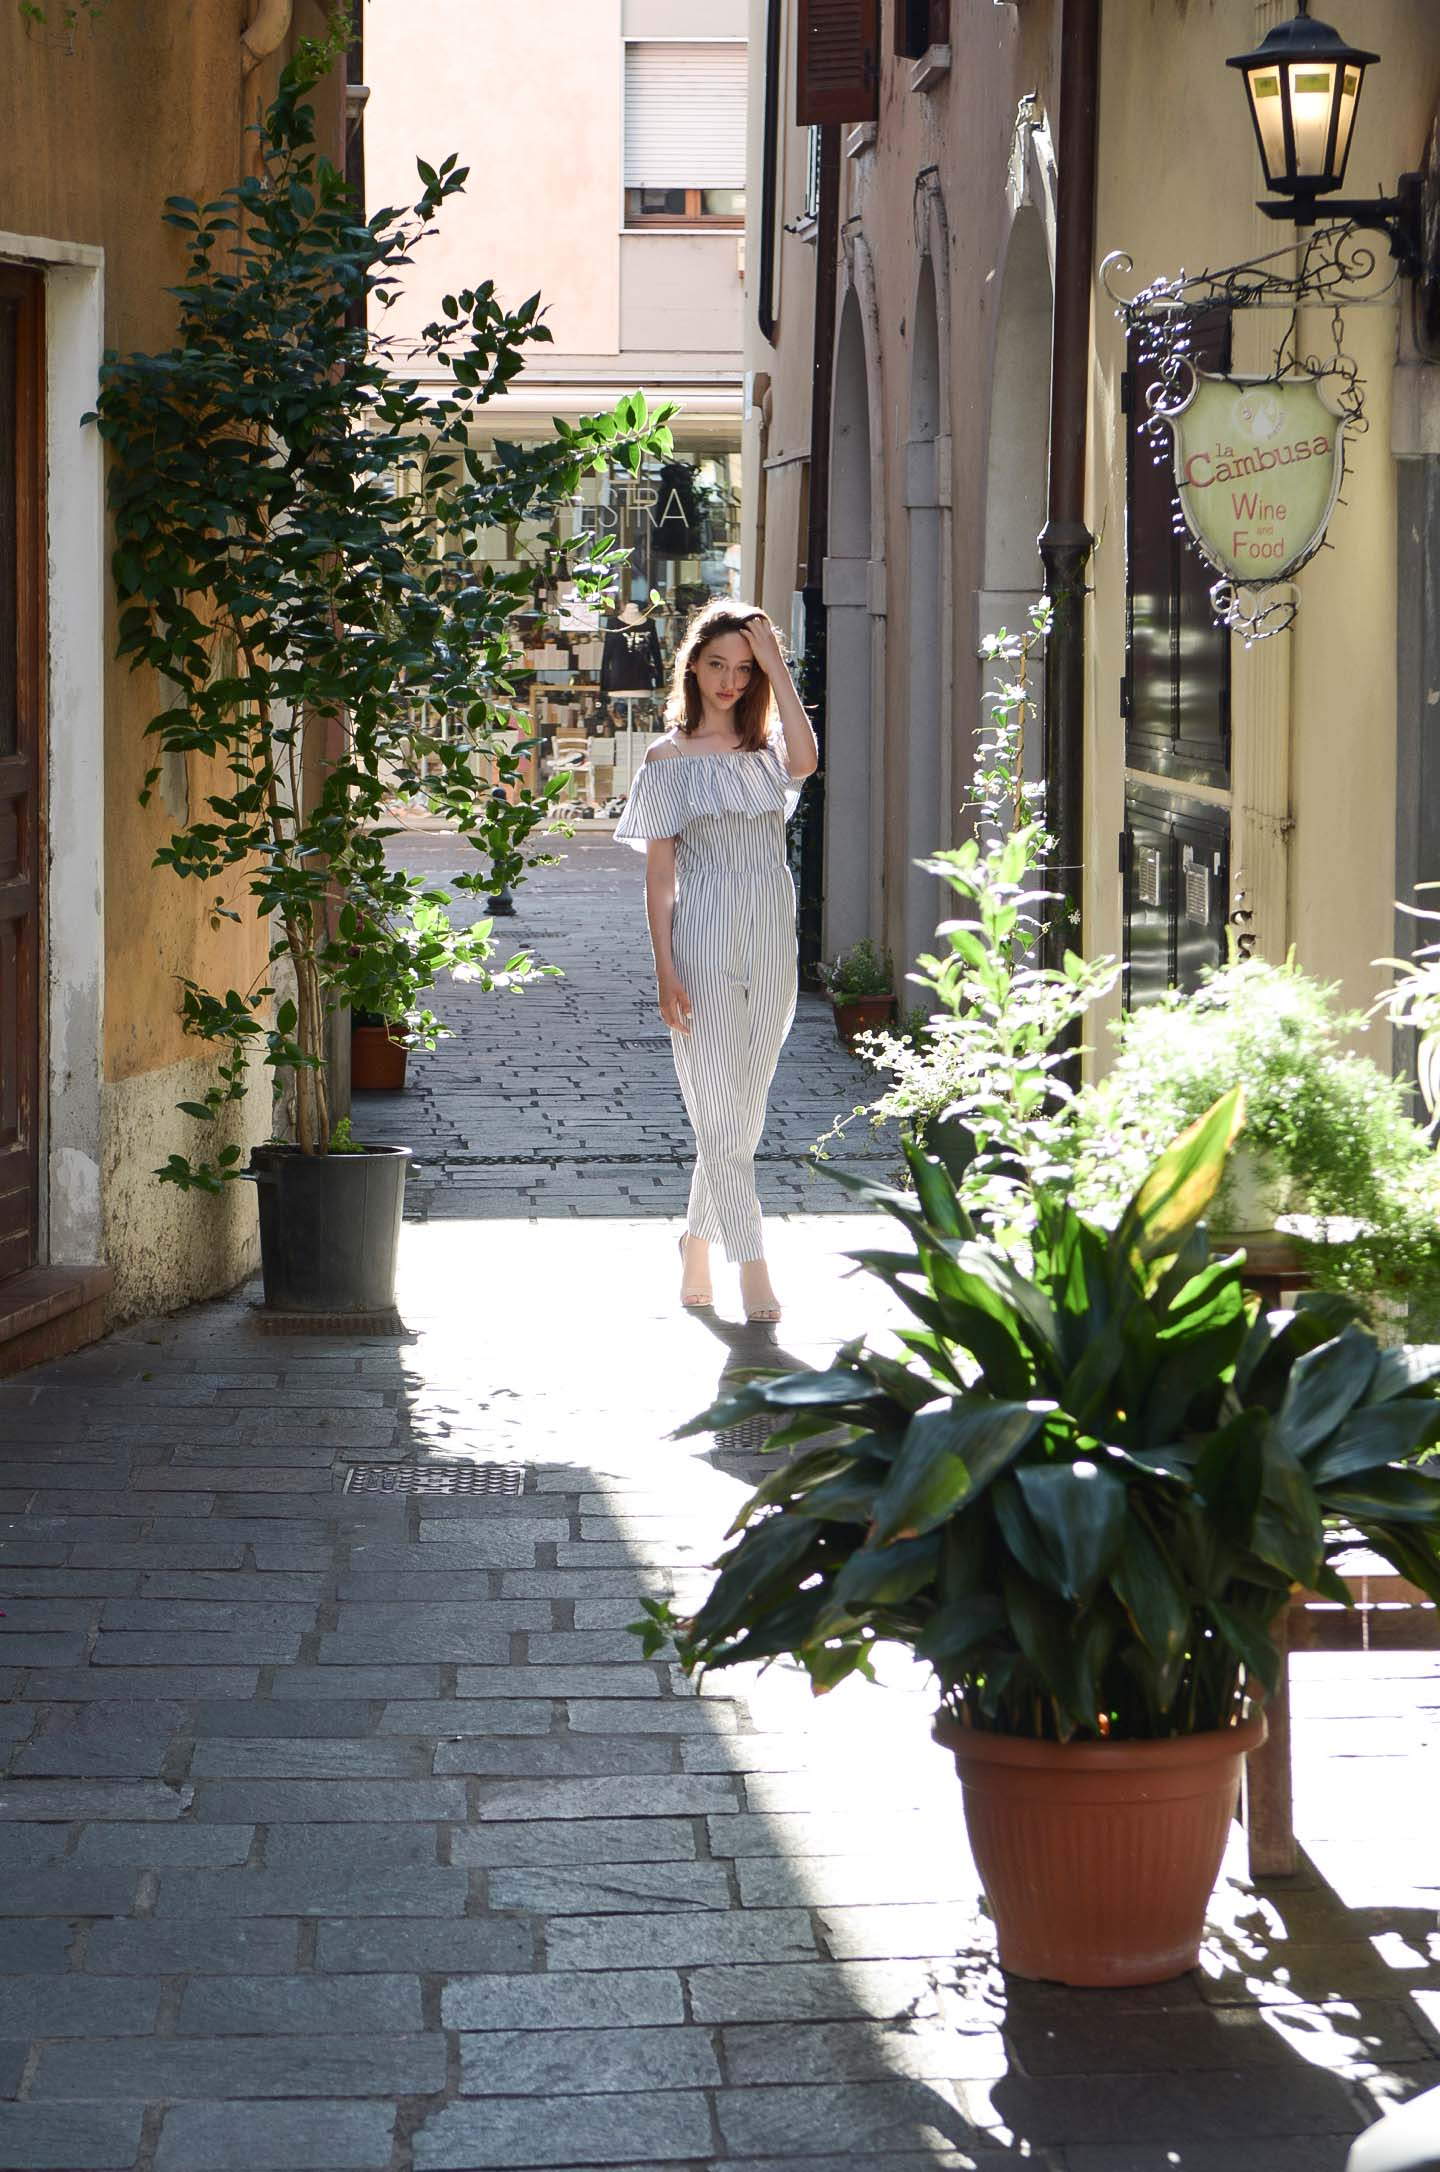 The second part of our vacation was spent in Garda lake, a gorgeous lake with beautiful small towns around it. We stayed in a small town called Desenzano, which was in a perfect location, with amazing beaches and a scenic lively down-town.